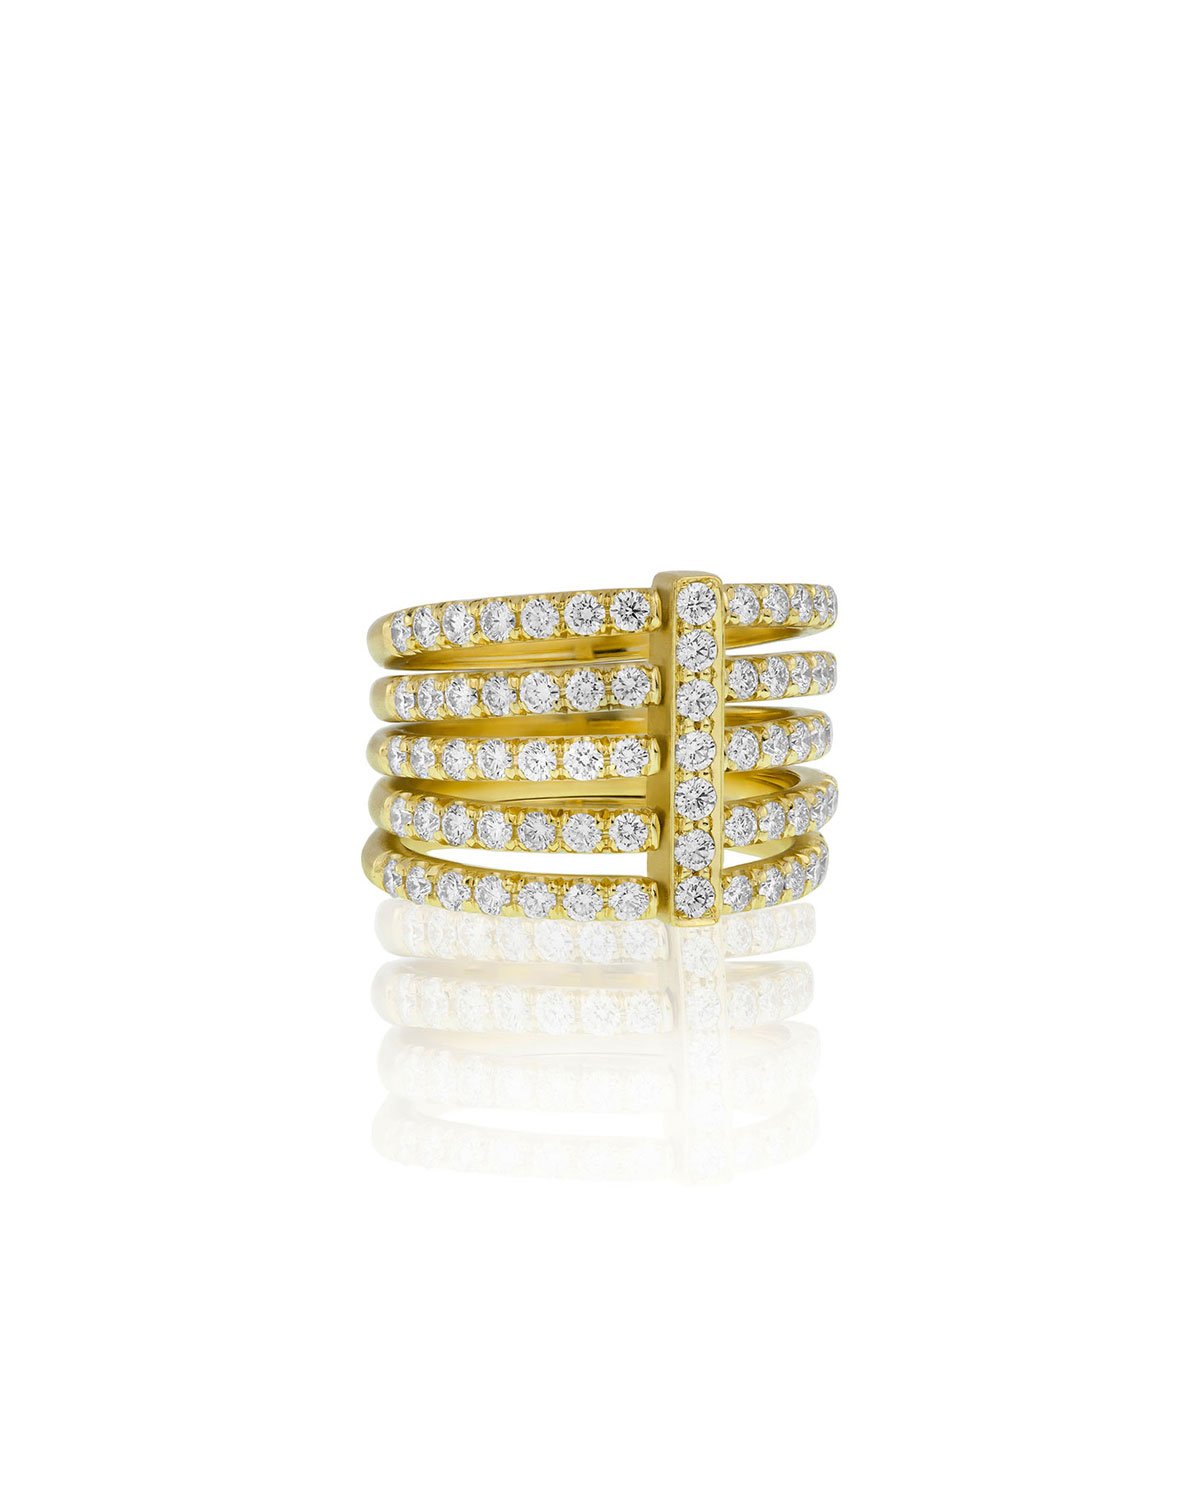 Carelle Moderne 18k Five-Row Diamond Ring, Size 6.5